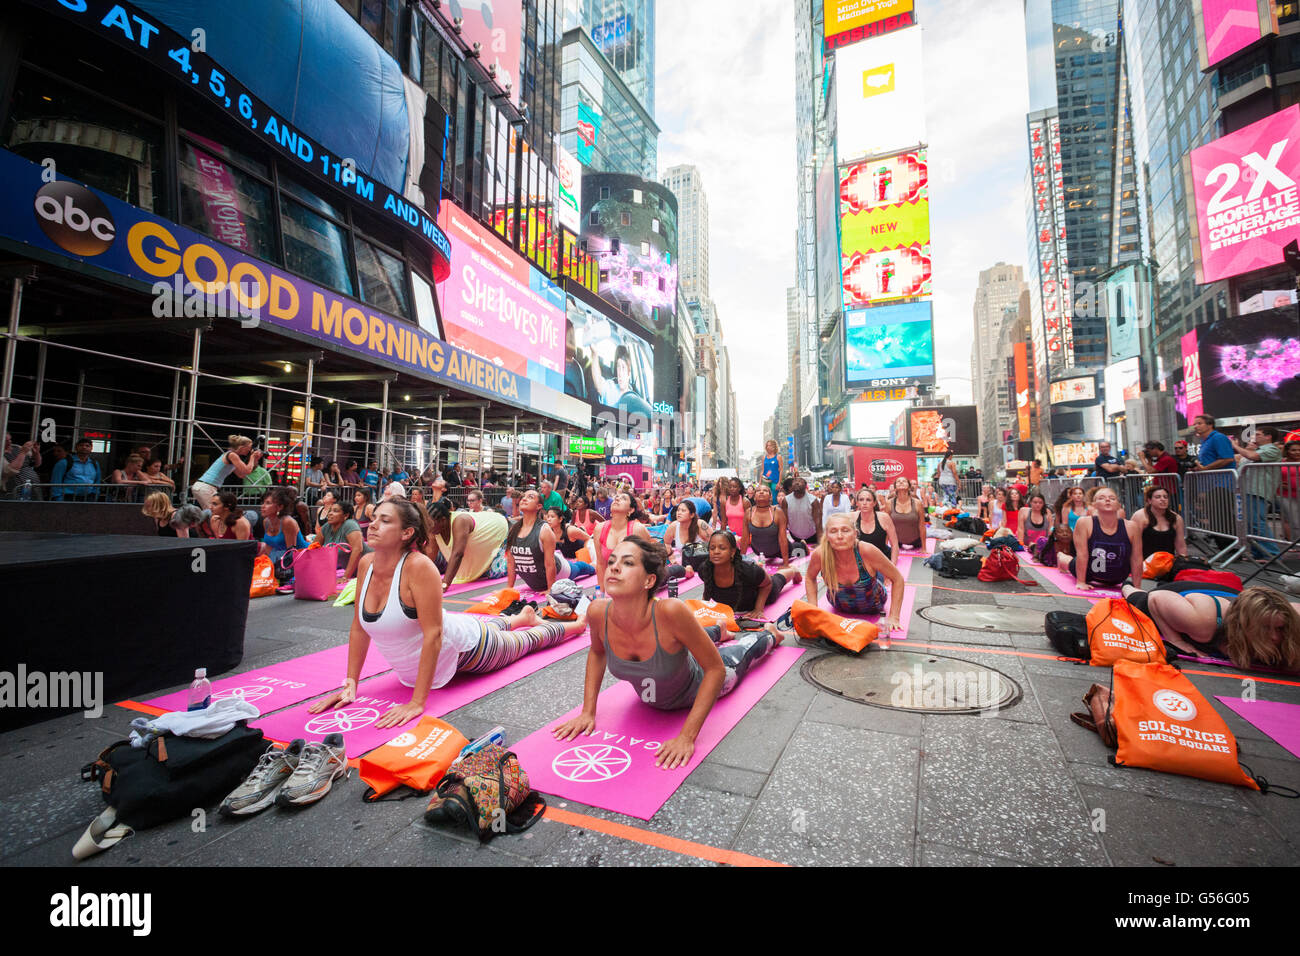 New York, USA. 20th June, 2016. Thousands of yoga practitioners pack Times Square in New York to practice yoga on - Stock Image